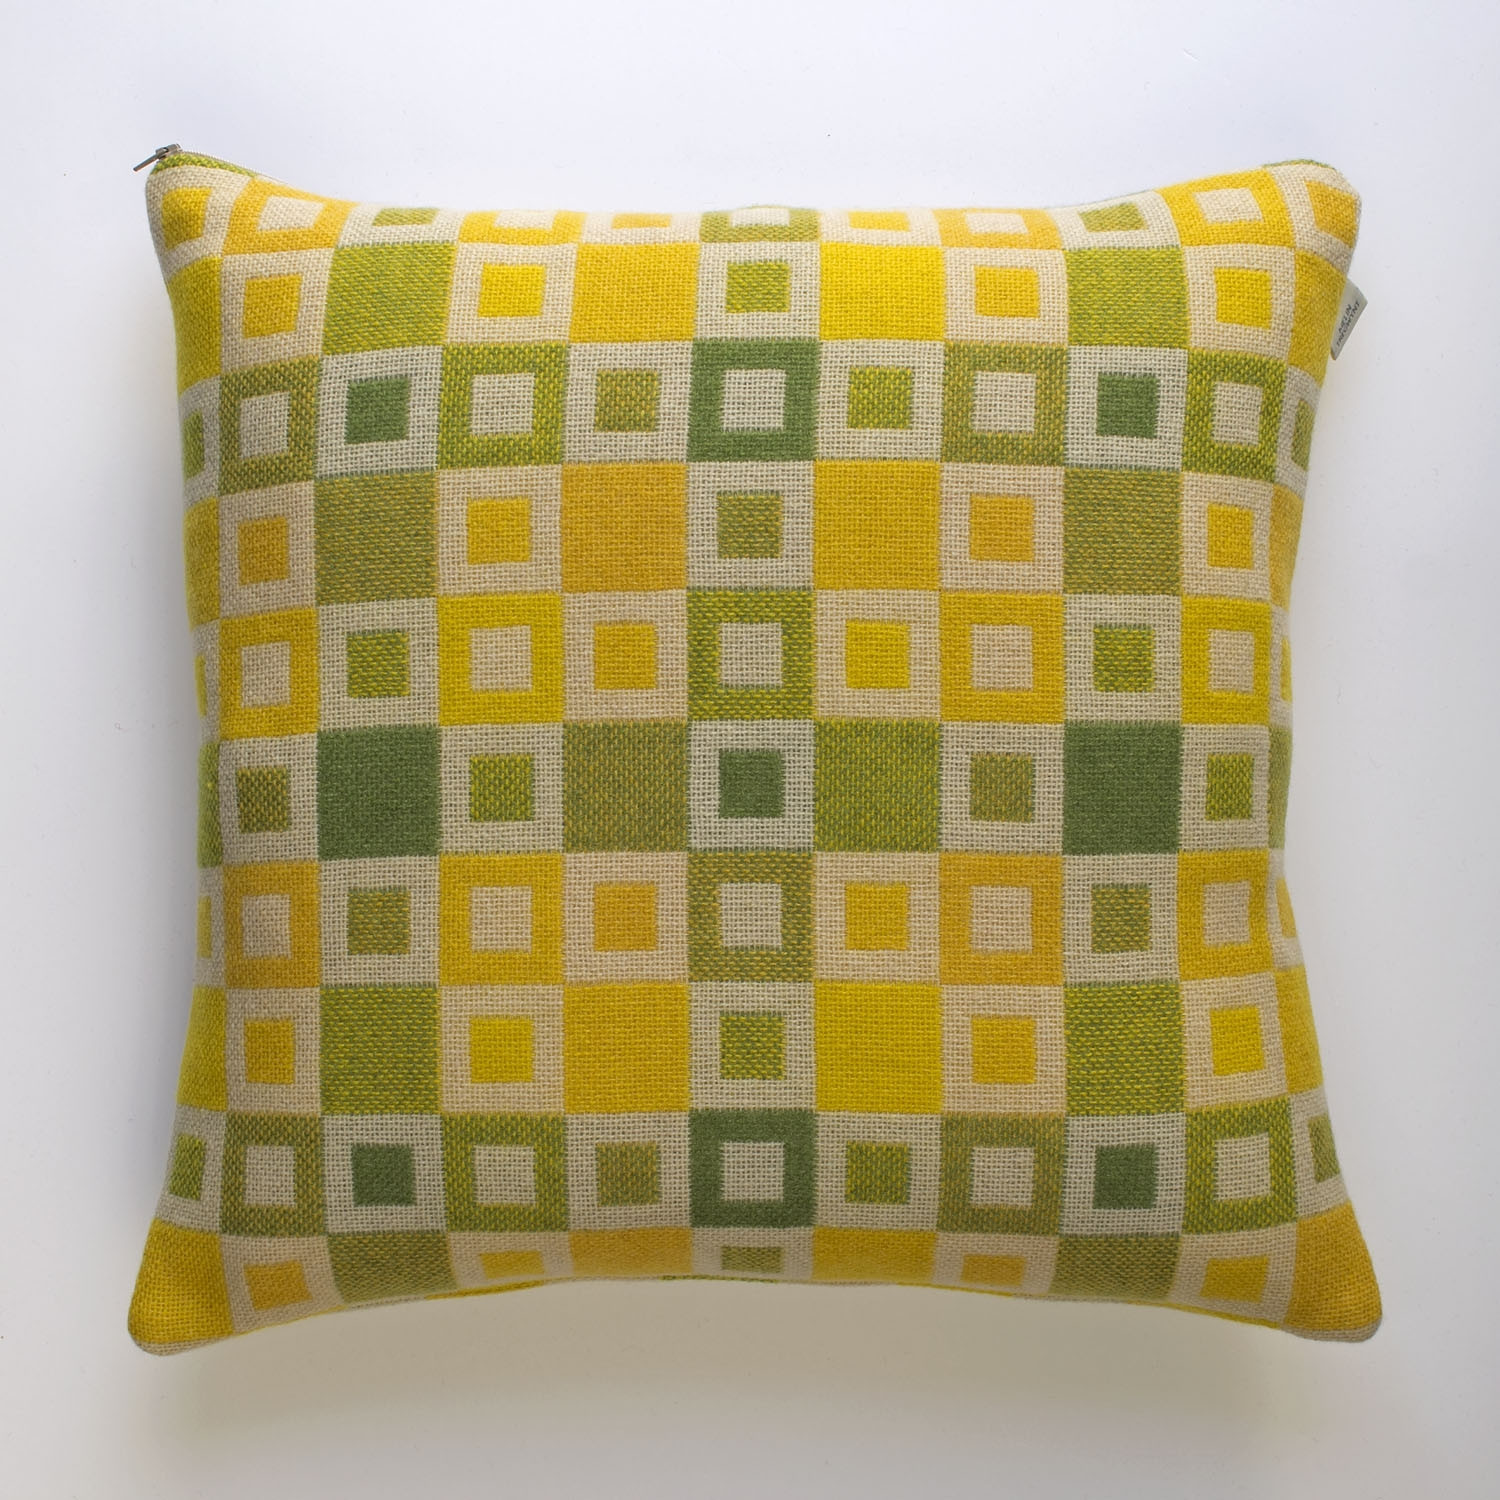 Madison daffodil cushion